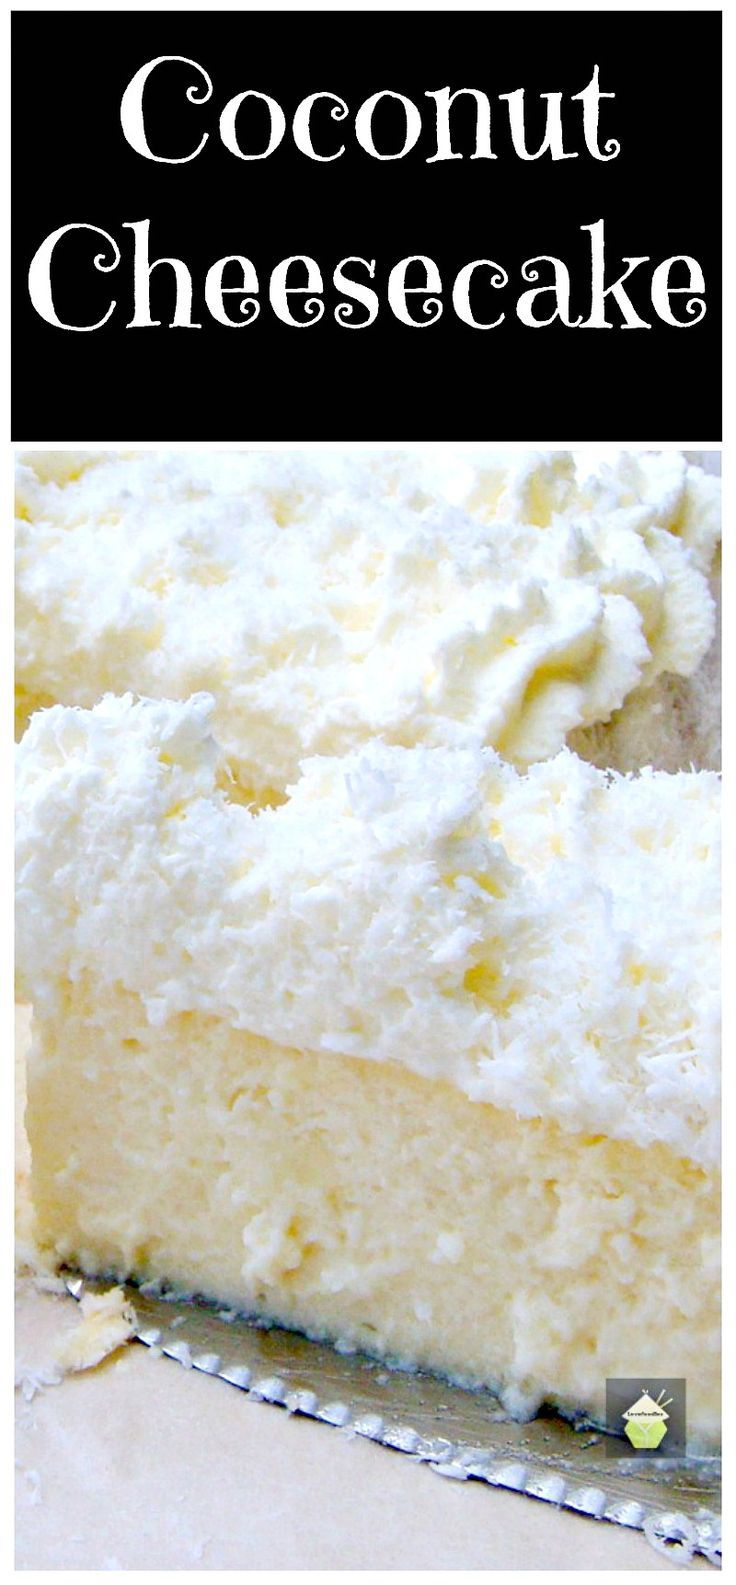 Coconut Ricotta Cheesecake. A wonderful fluffy, soft & creamy baked cheesecake, out of this world!